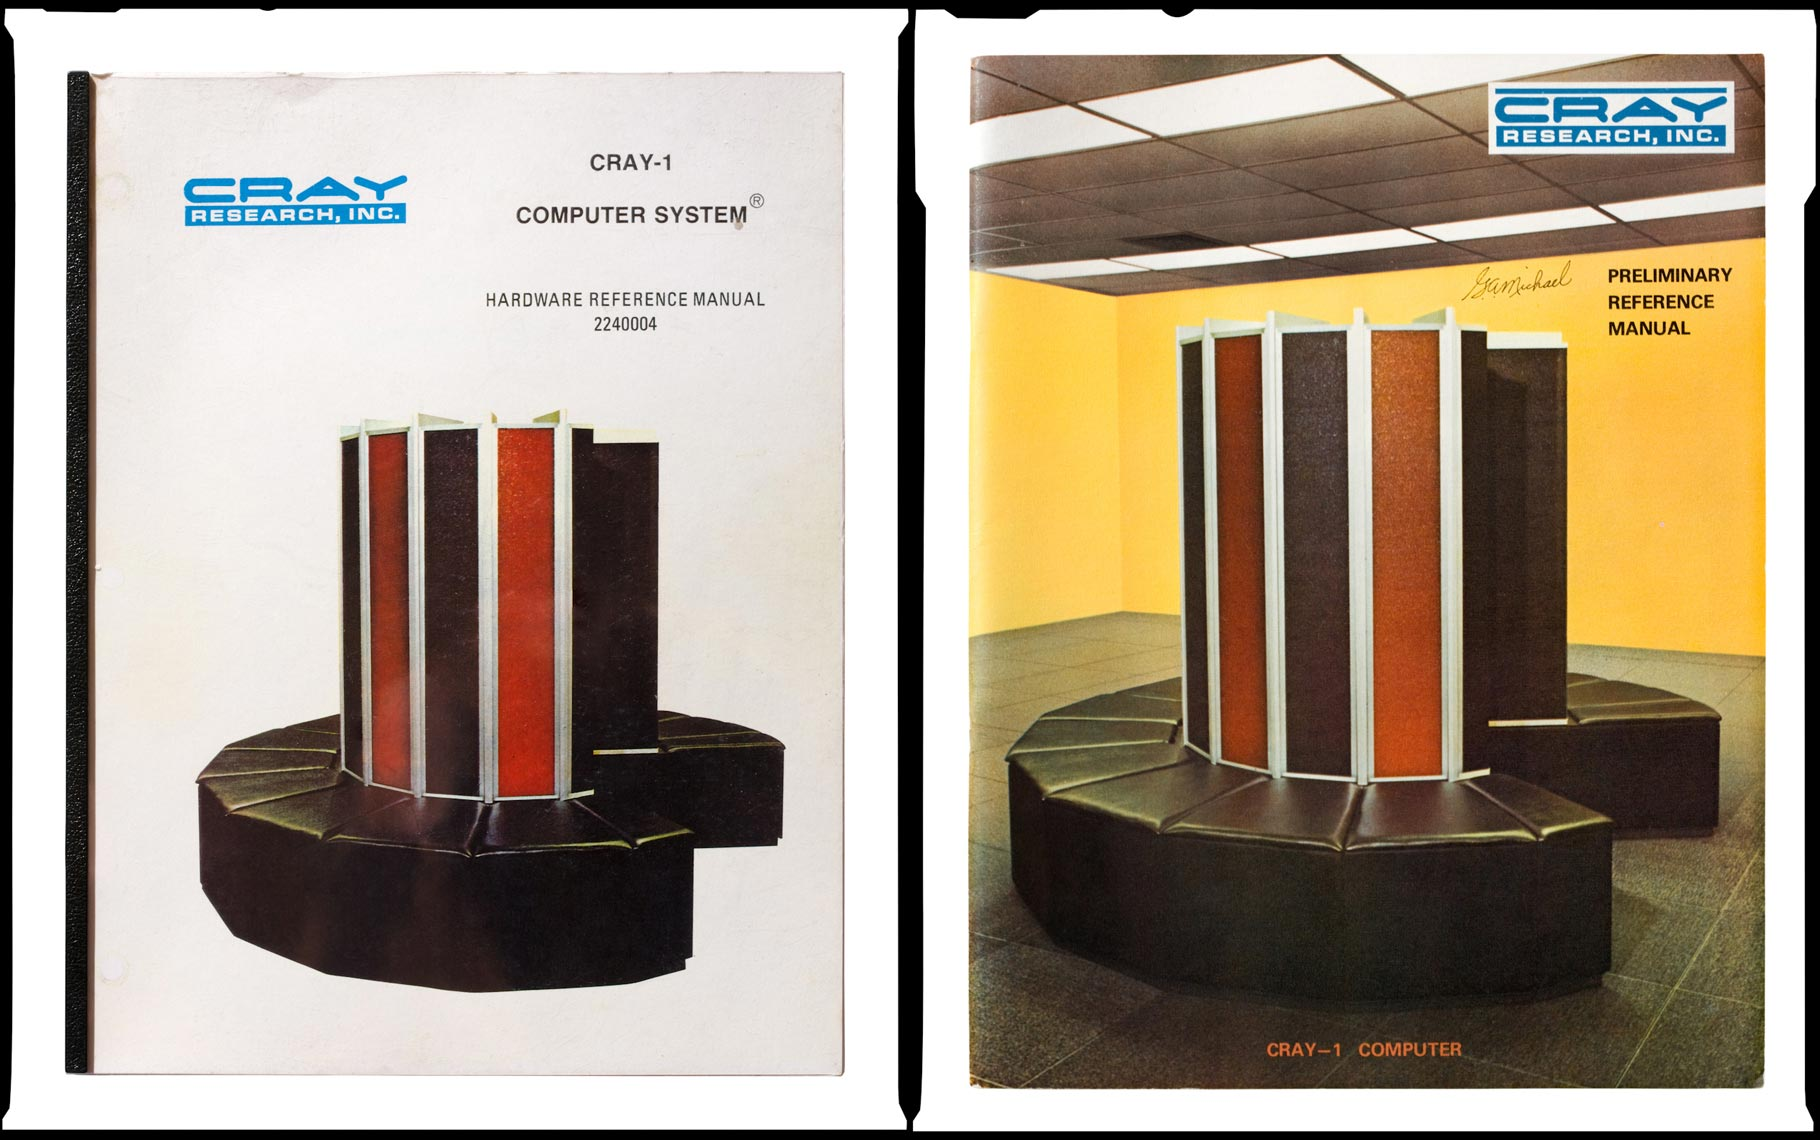 Cray-1 Super Computer Manual